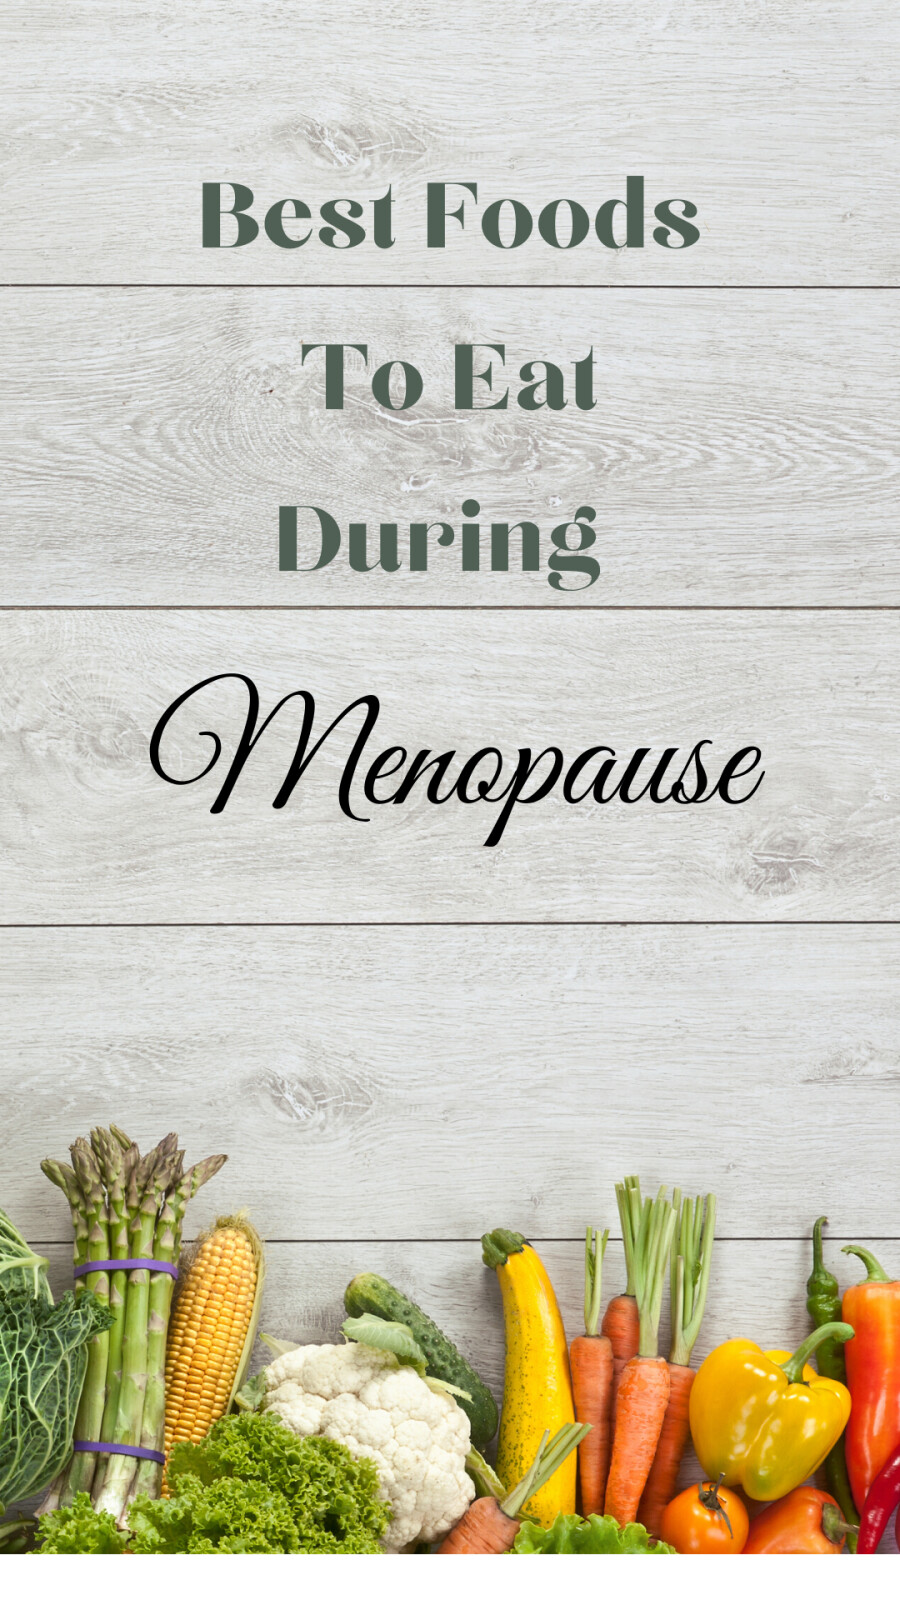 Best Foods To Eat During Menopause